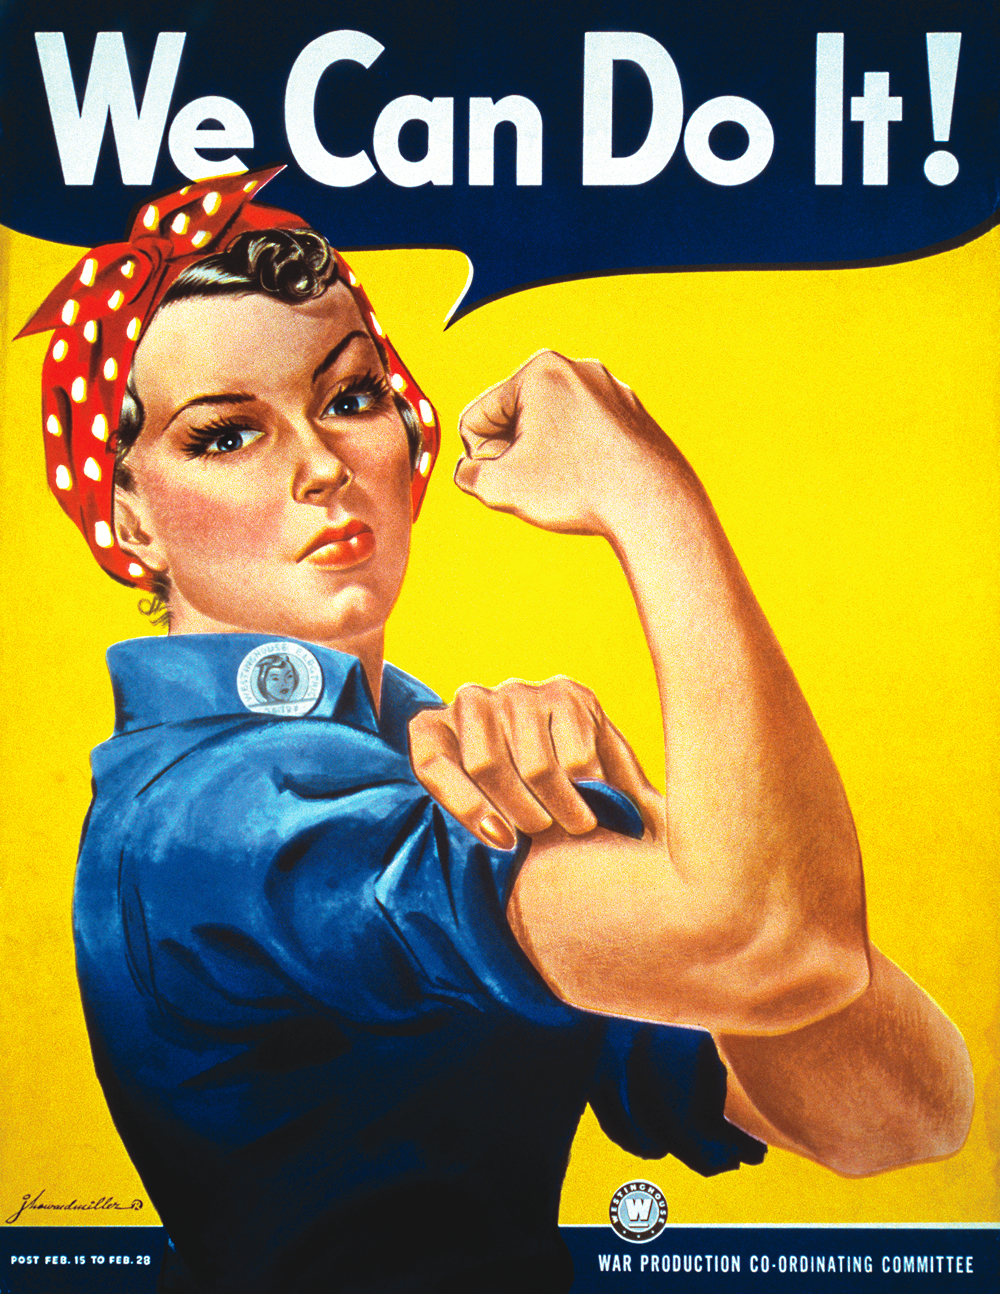 https://upload.wikimedia.org/wikipedia/commons/1/12/We_Can_Do_It!.jpg